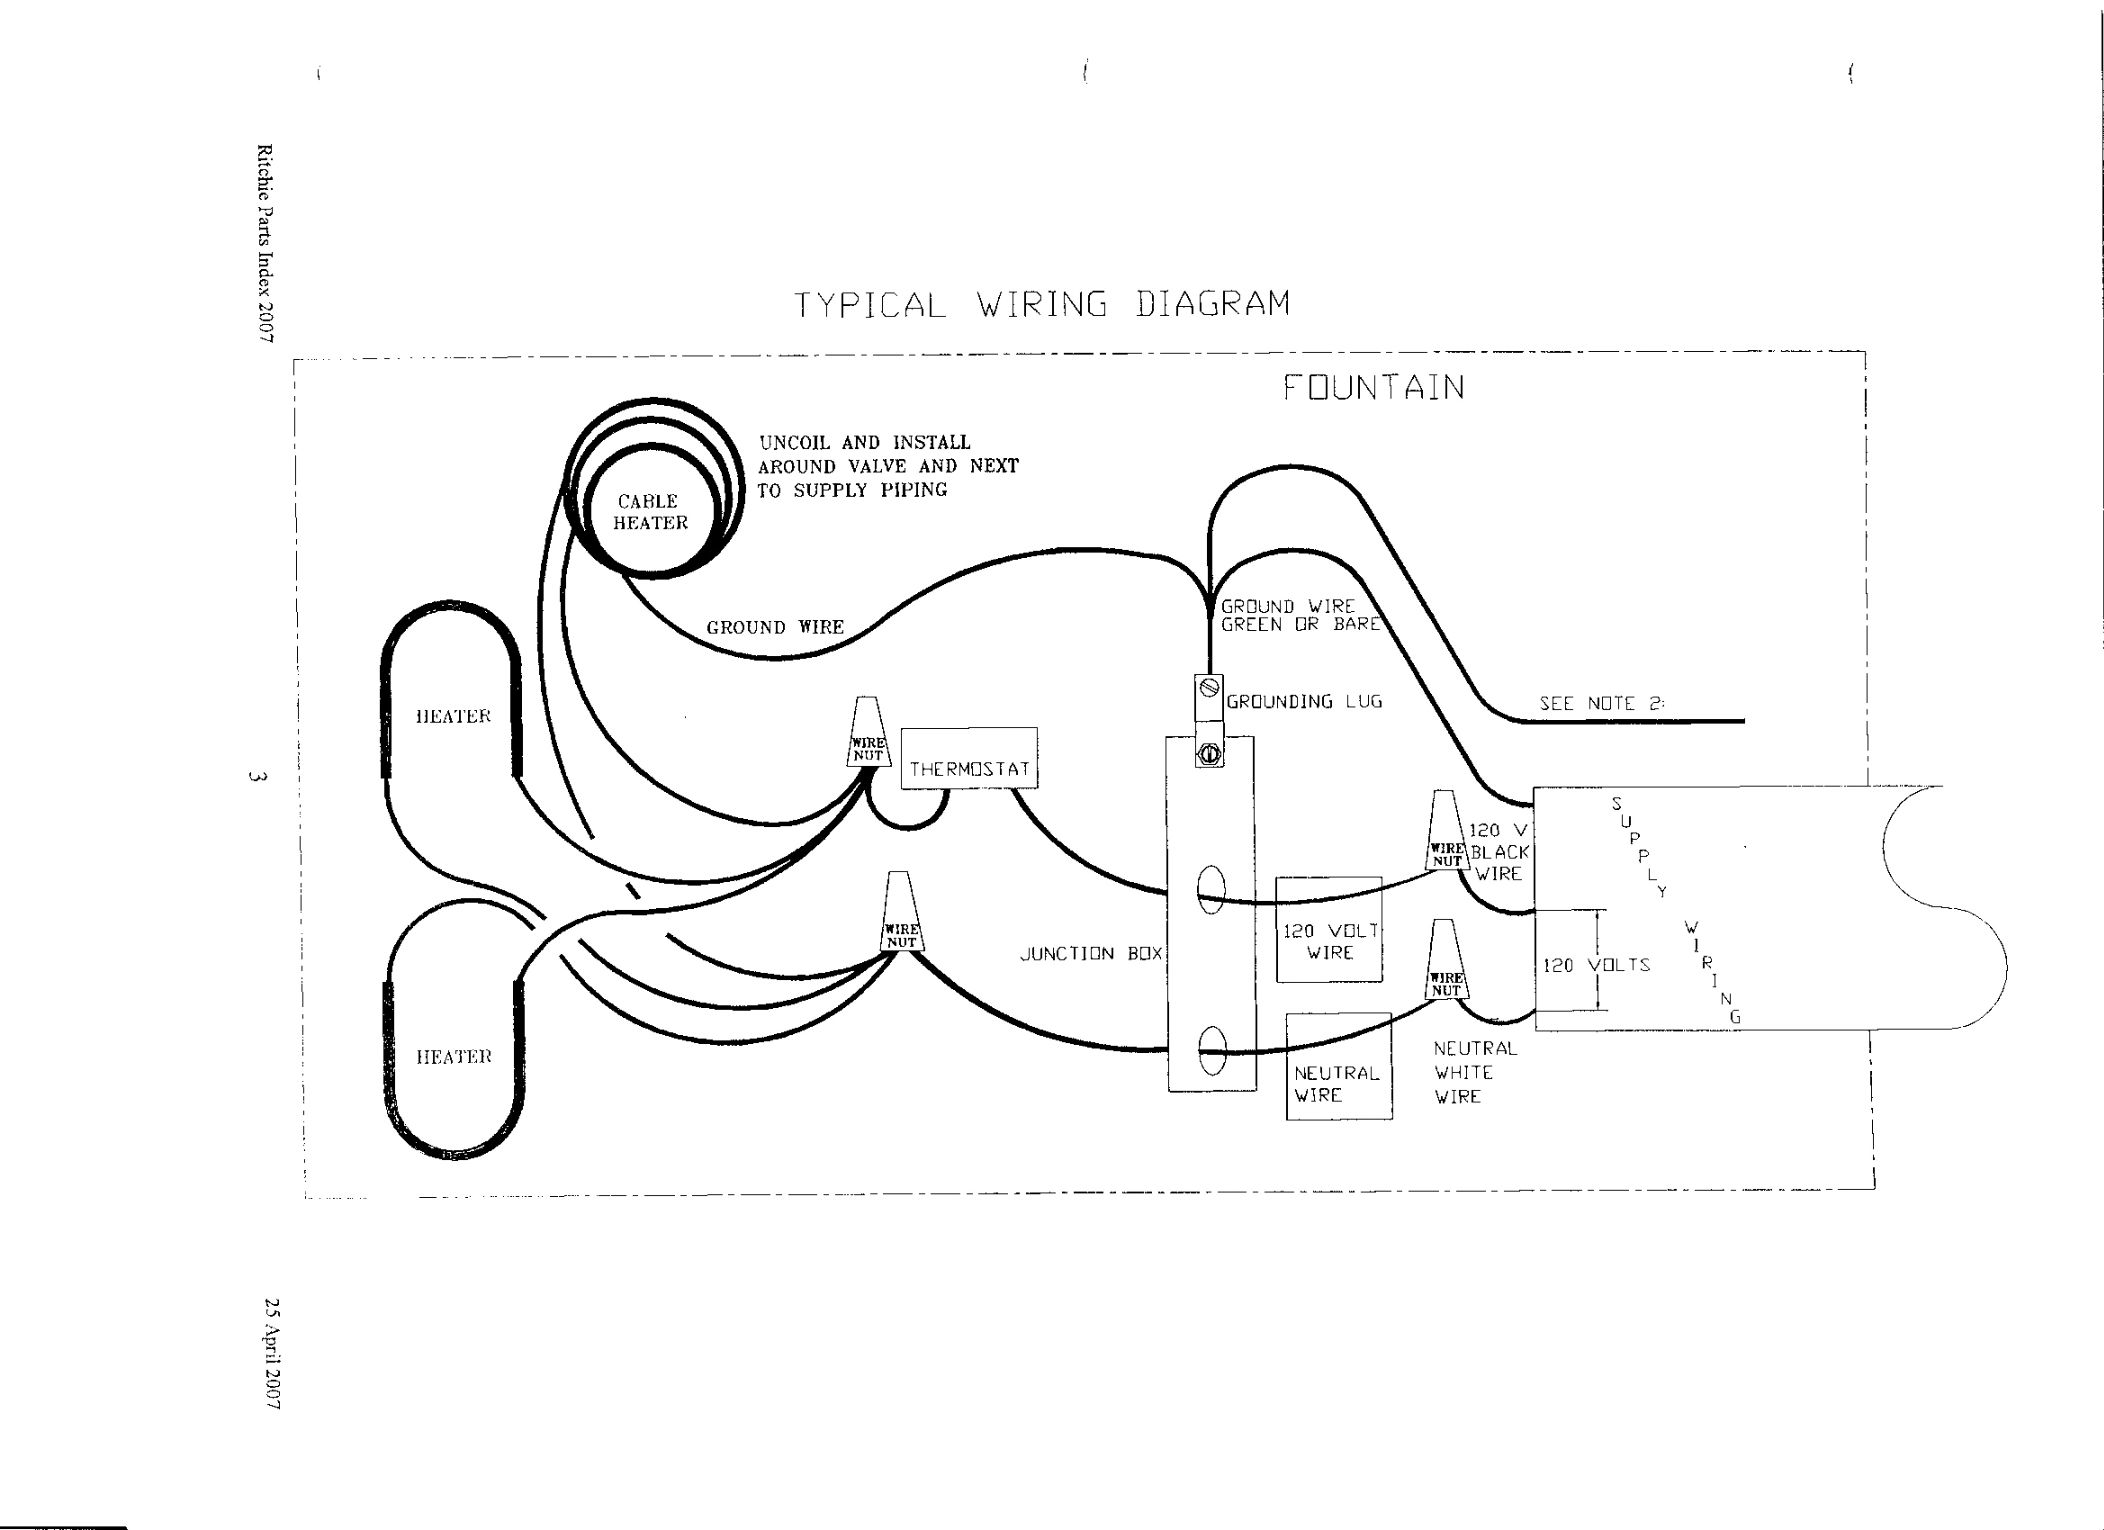 Typical Wiring Diagram typical wiring diagram for waterers and fountains Basic Electrical Wiring Diagrams at reclaimingppi.co